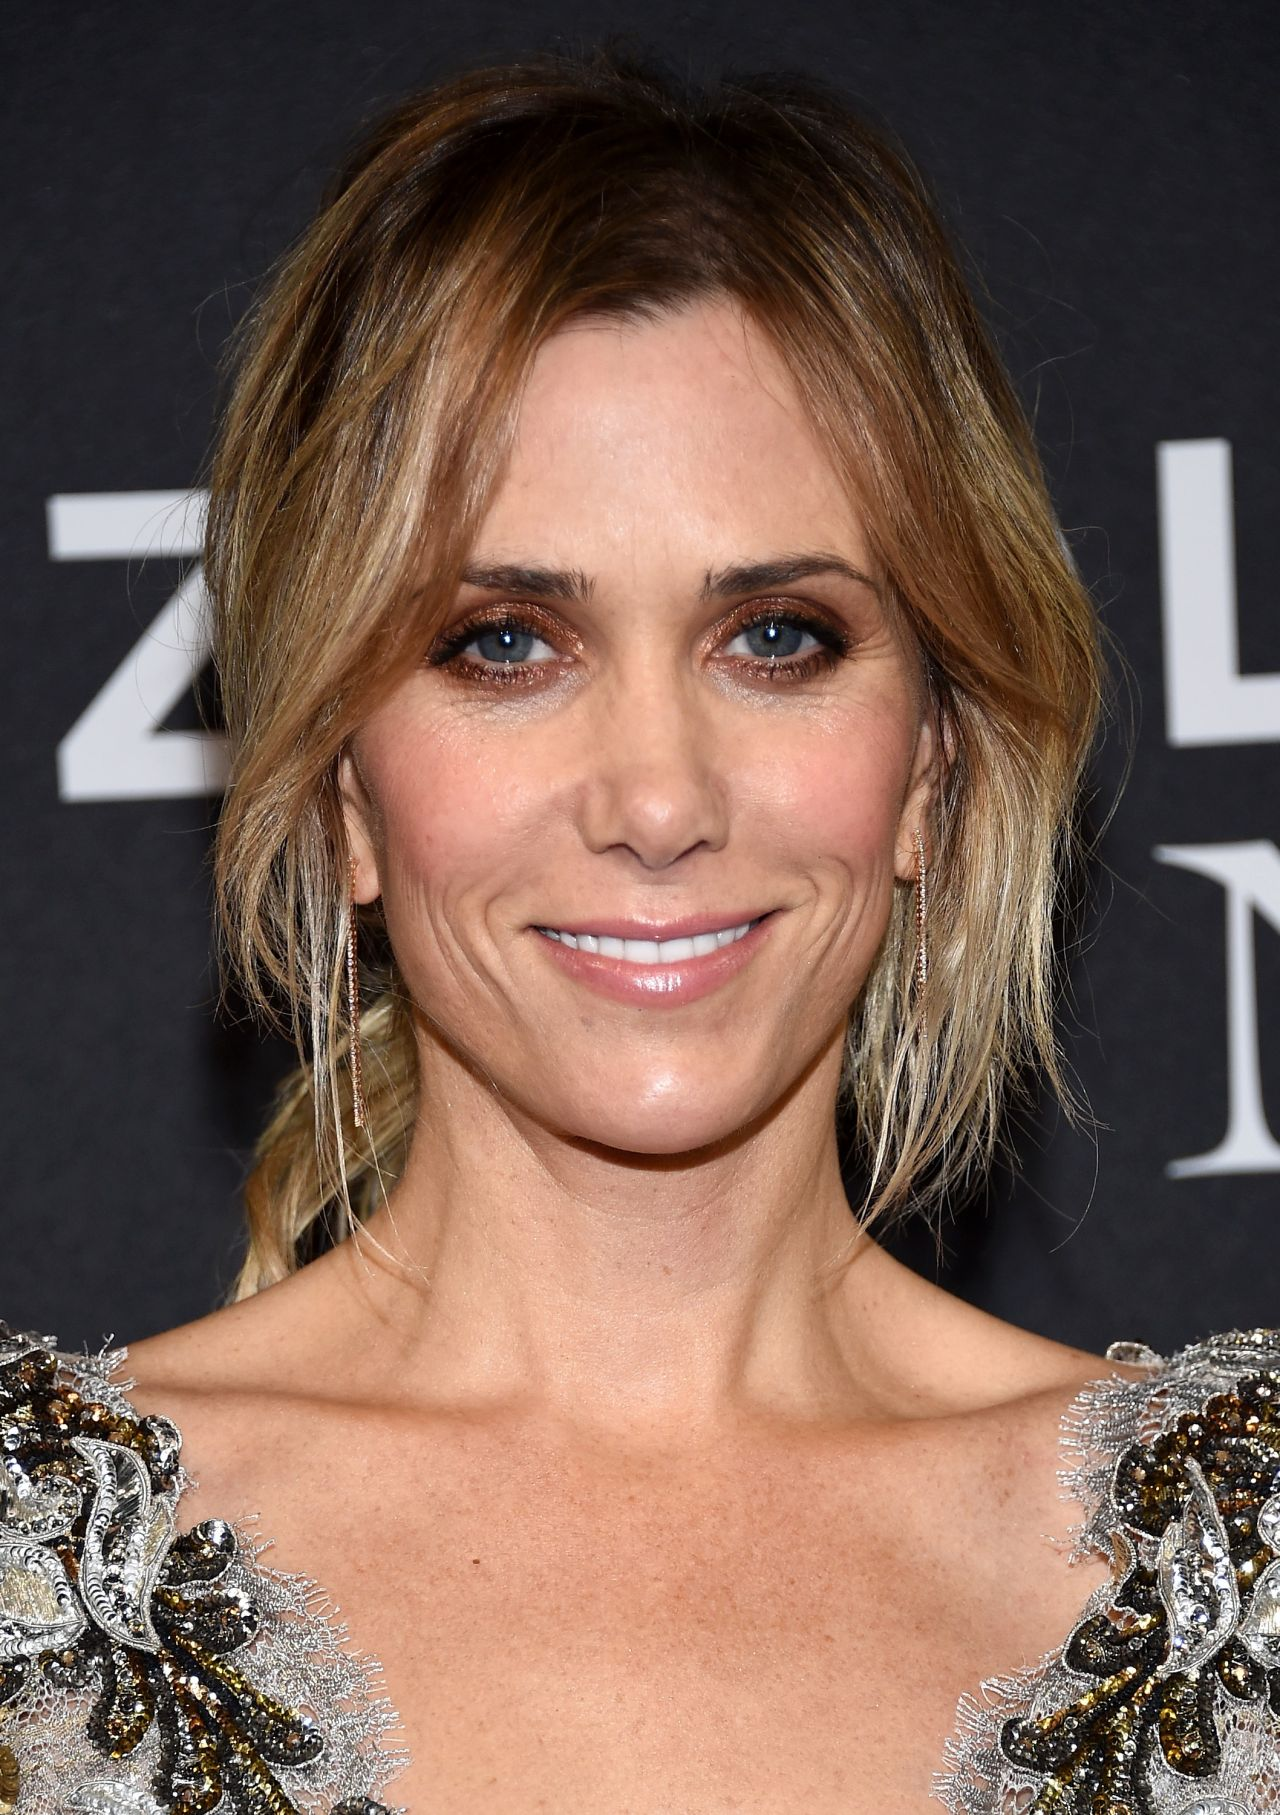 Kristen Wiig Zoolander 2 World Premiere In New York